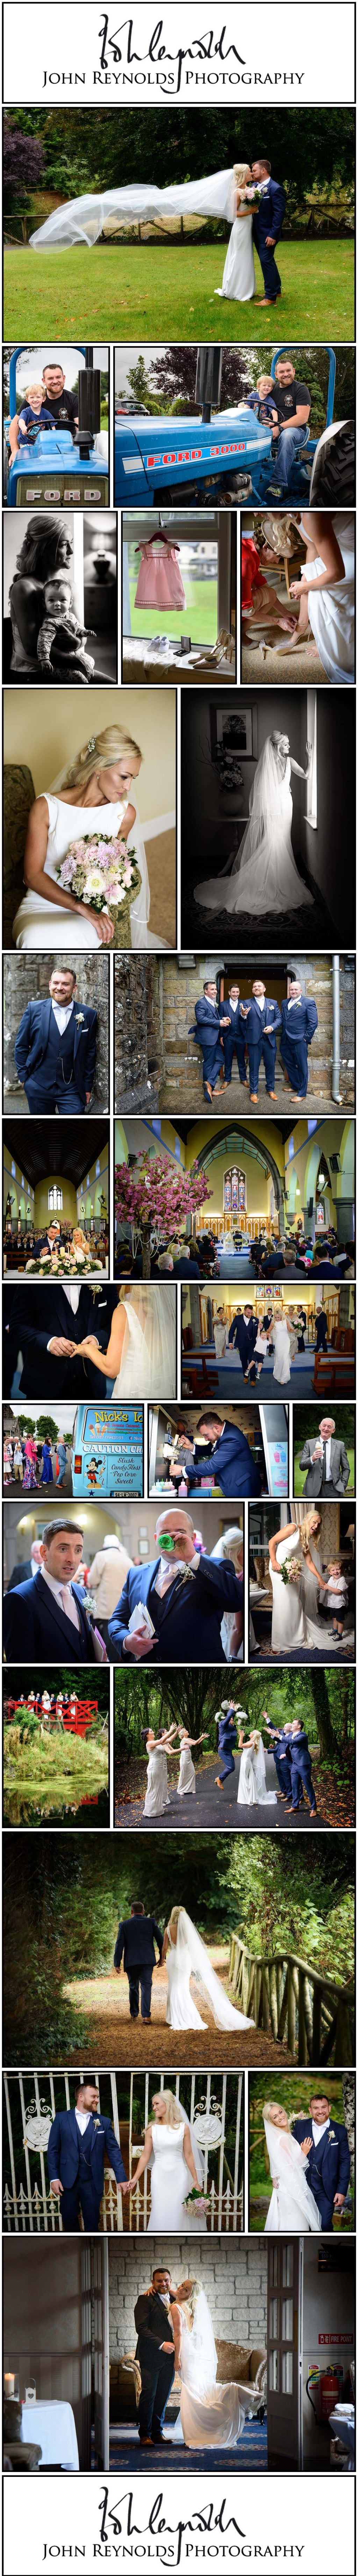 Blog Collage-Orla & John